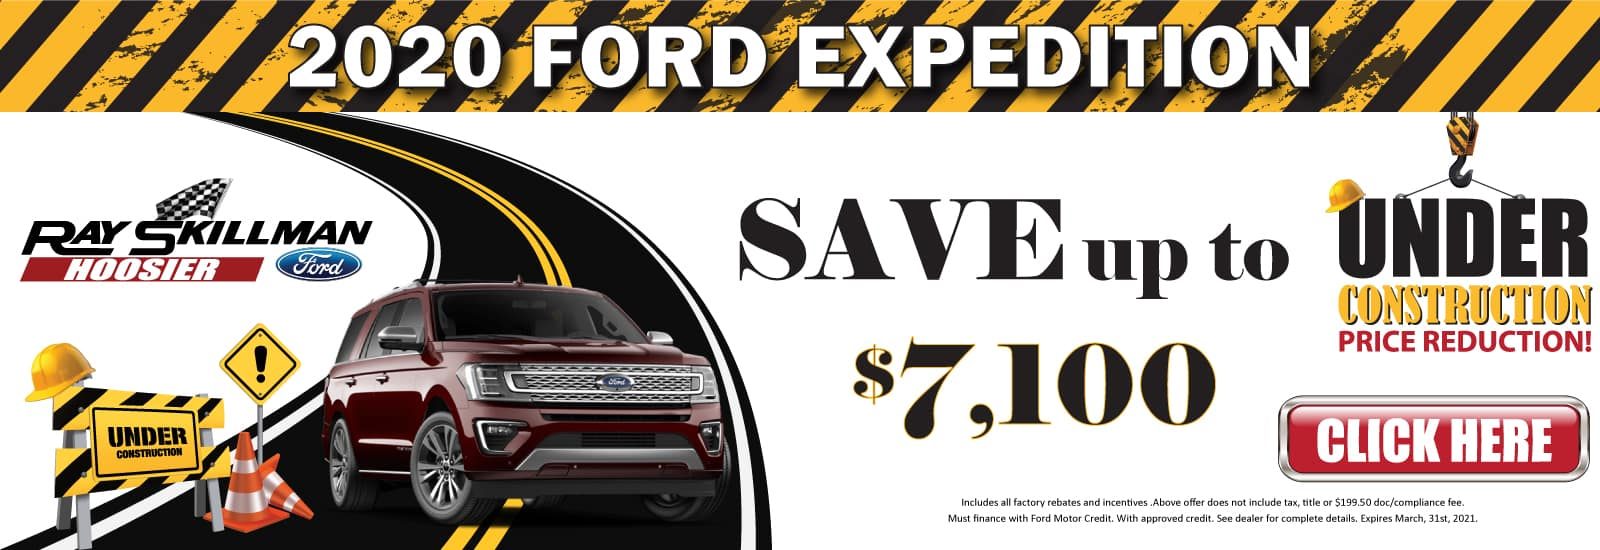 hoosier2020-Ford-Expedition-Web-Banner-1600×550